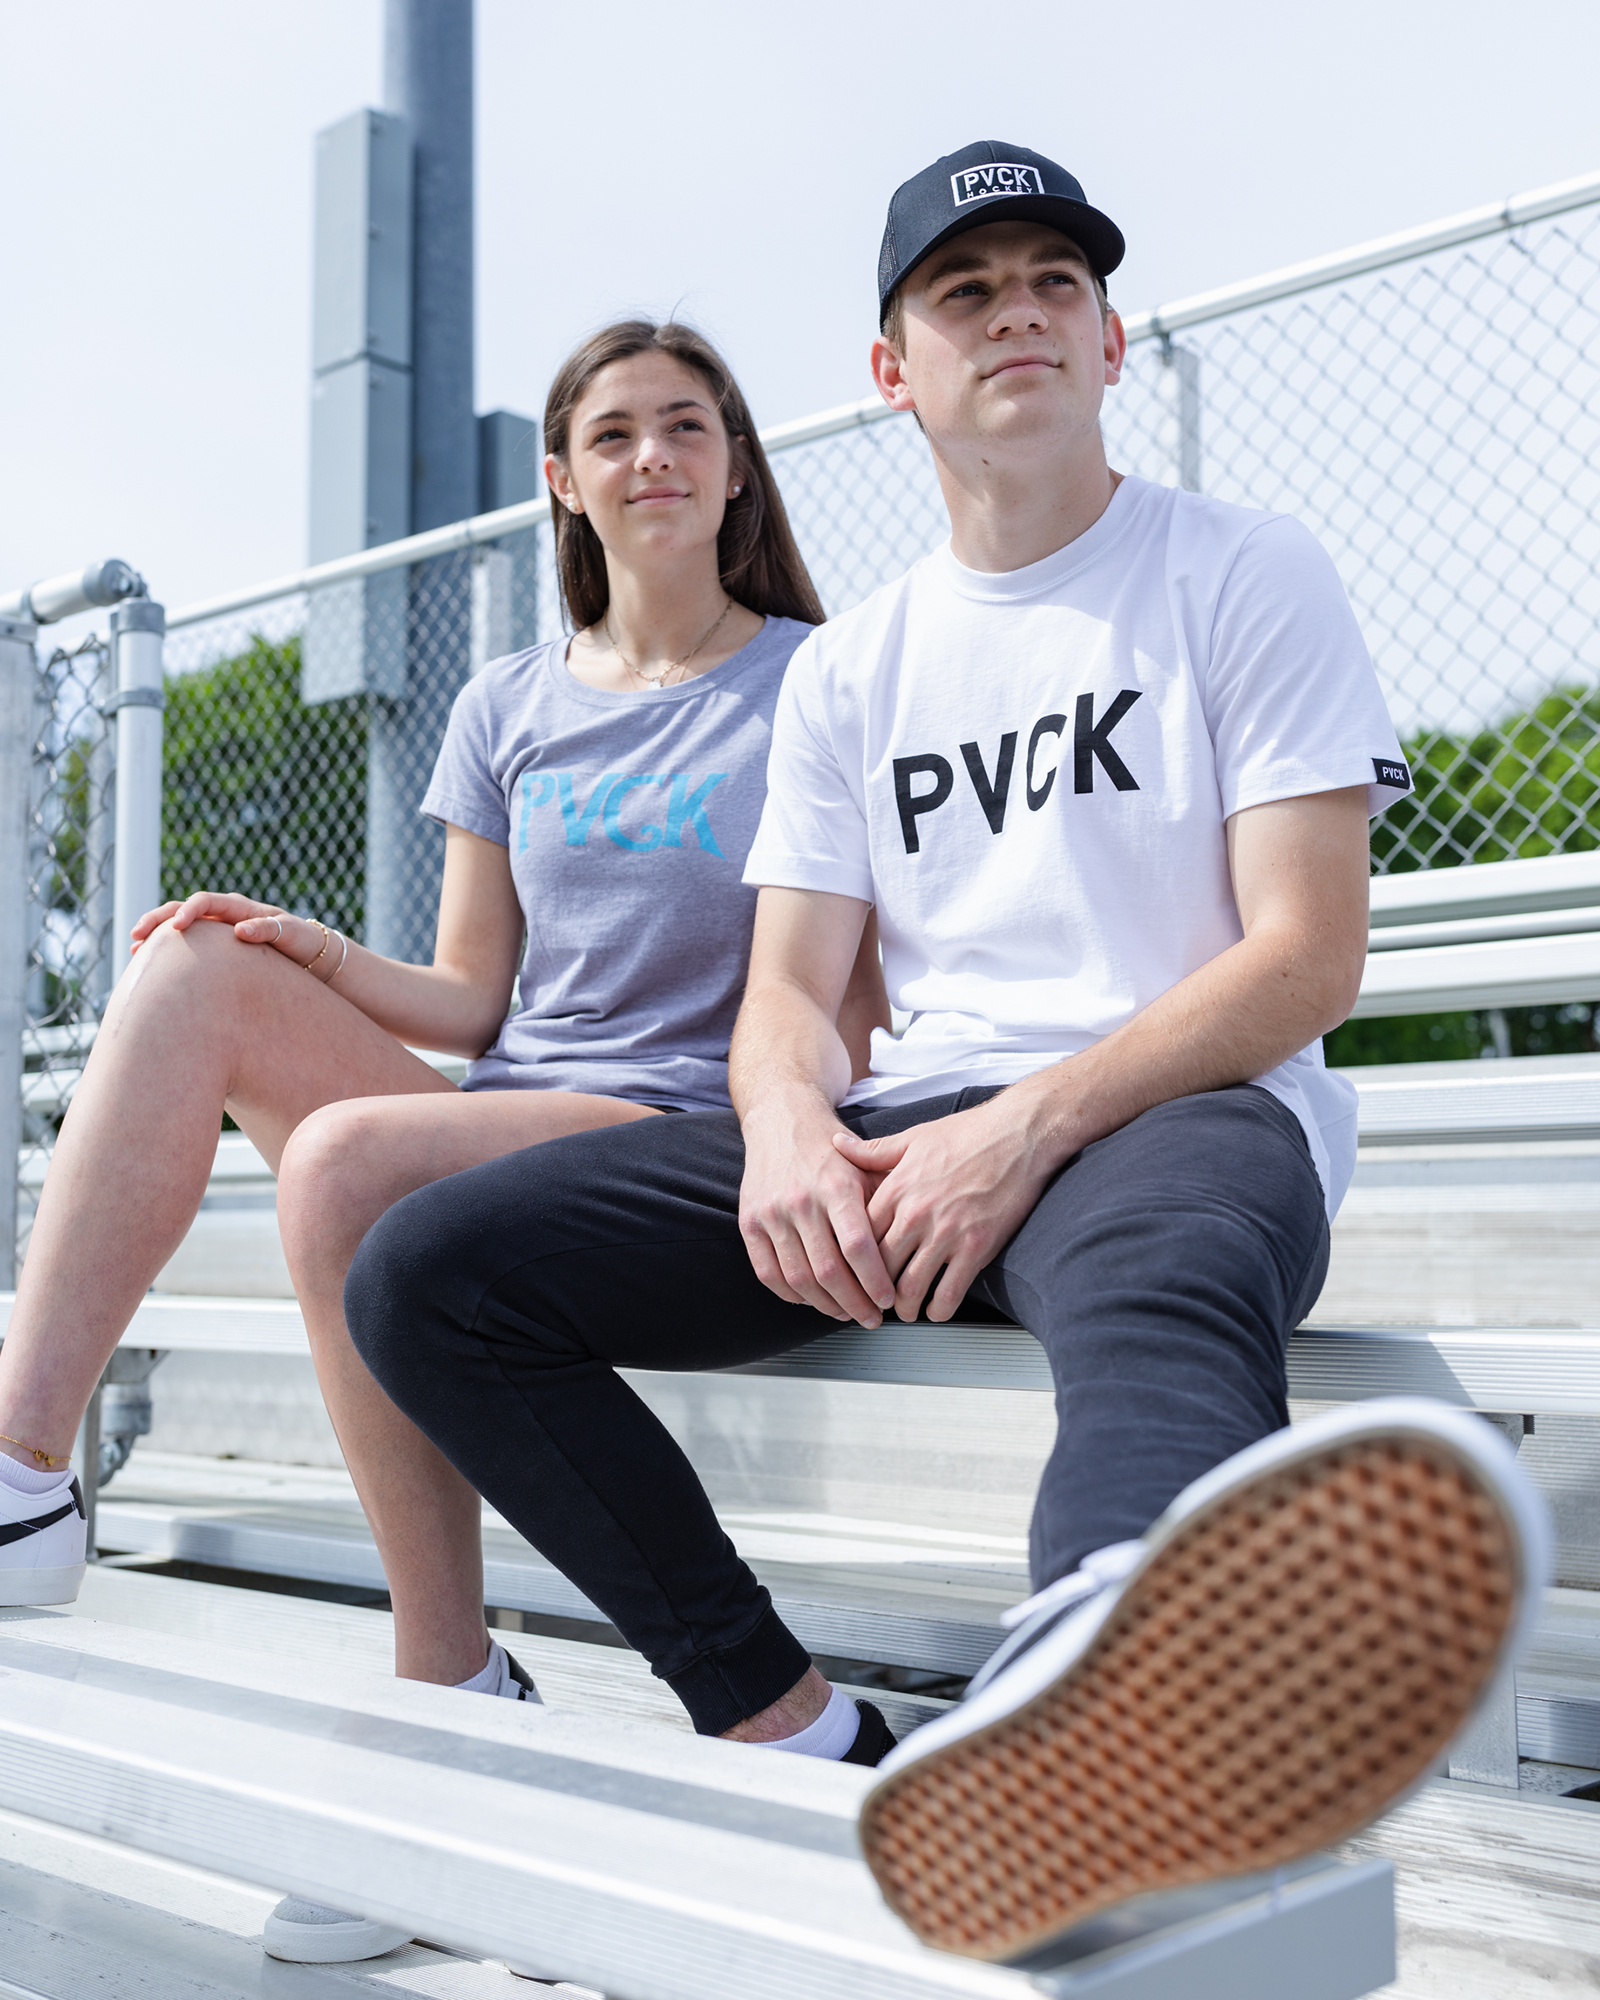 PVCK_SummerLifestyle_Shoot-EDITED-FINAL-LOW-RES-19